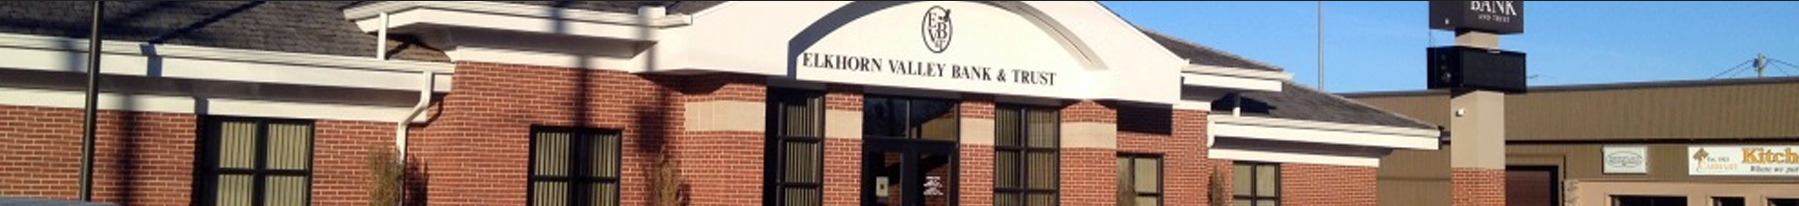 bank with Elkhorn Valley Bank & Trust